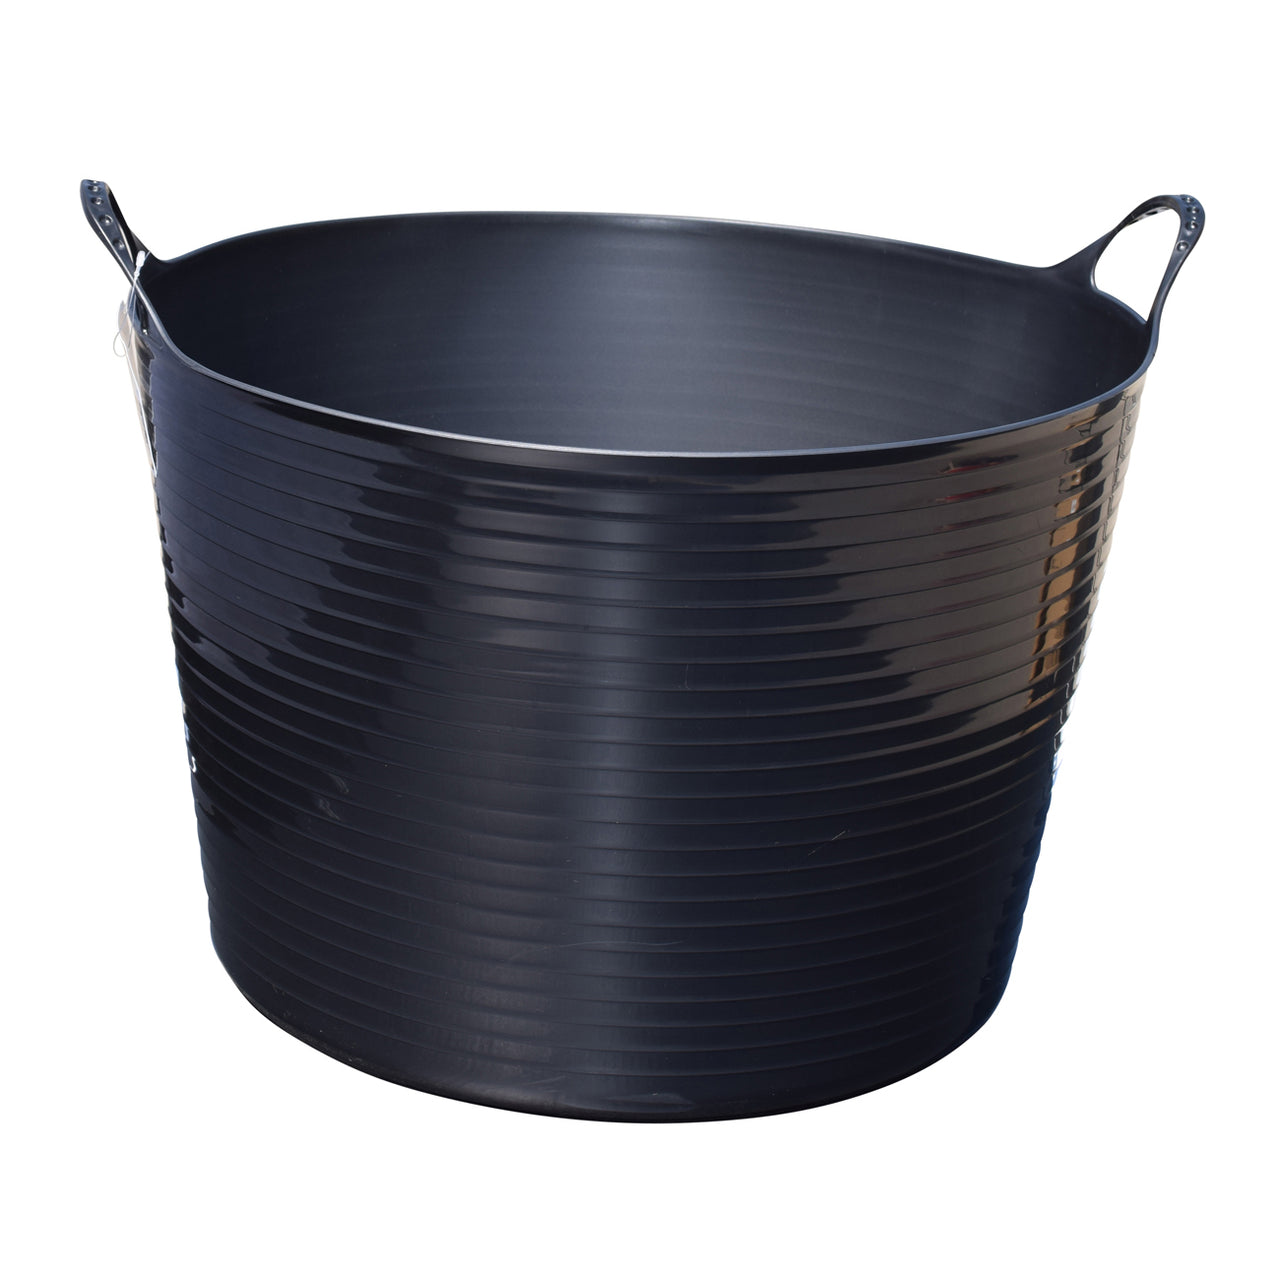 Tuff Stuff Flex Tub - Black (4 Sizes) - Buckets Pails Feeders Scoops Tubs Bottles Tuff Stuff - Canada